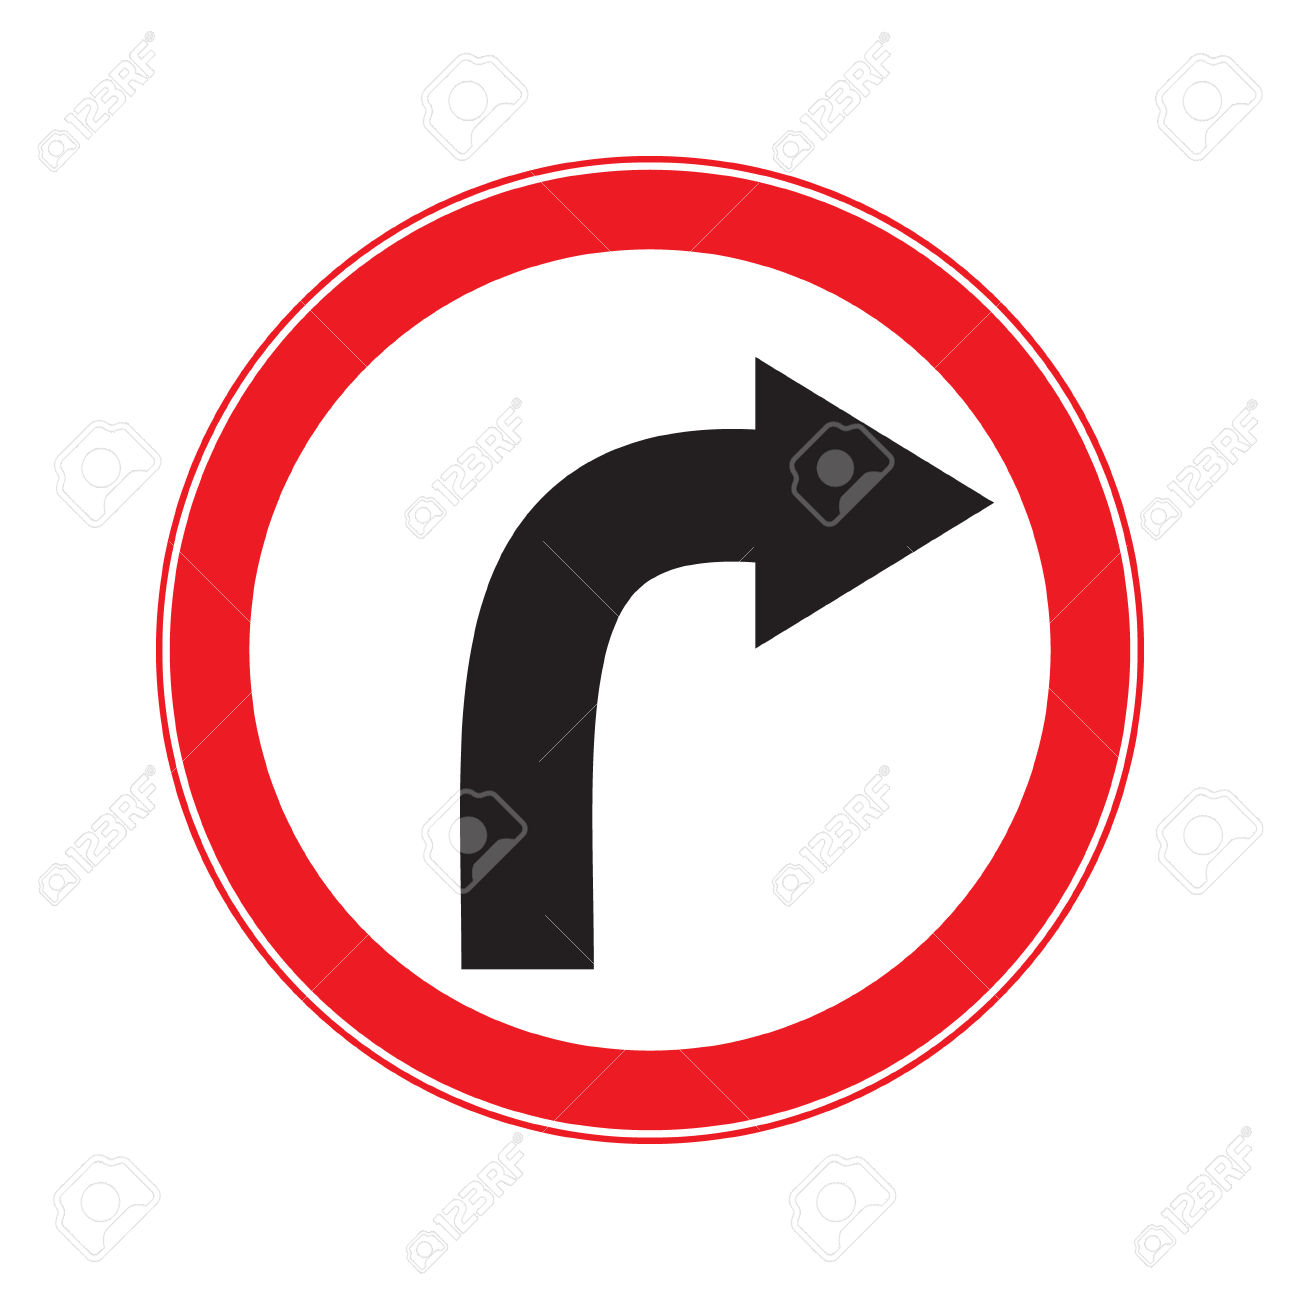 No Turn Right Ahead Sign Royalty Free Cliparts, Vectors, And Stock.